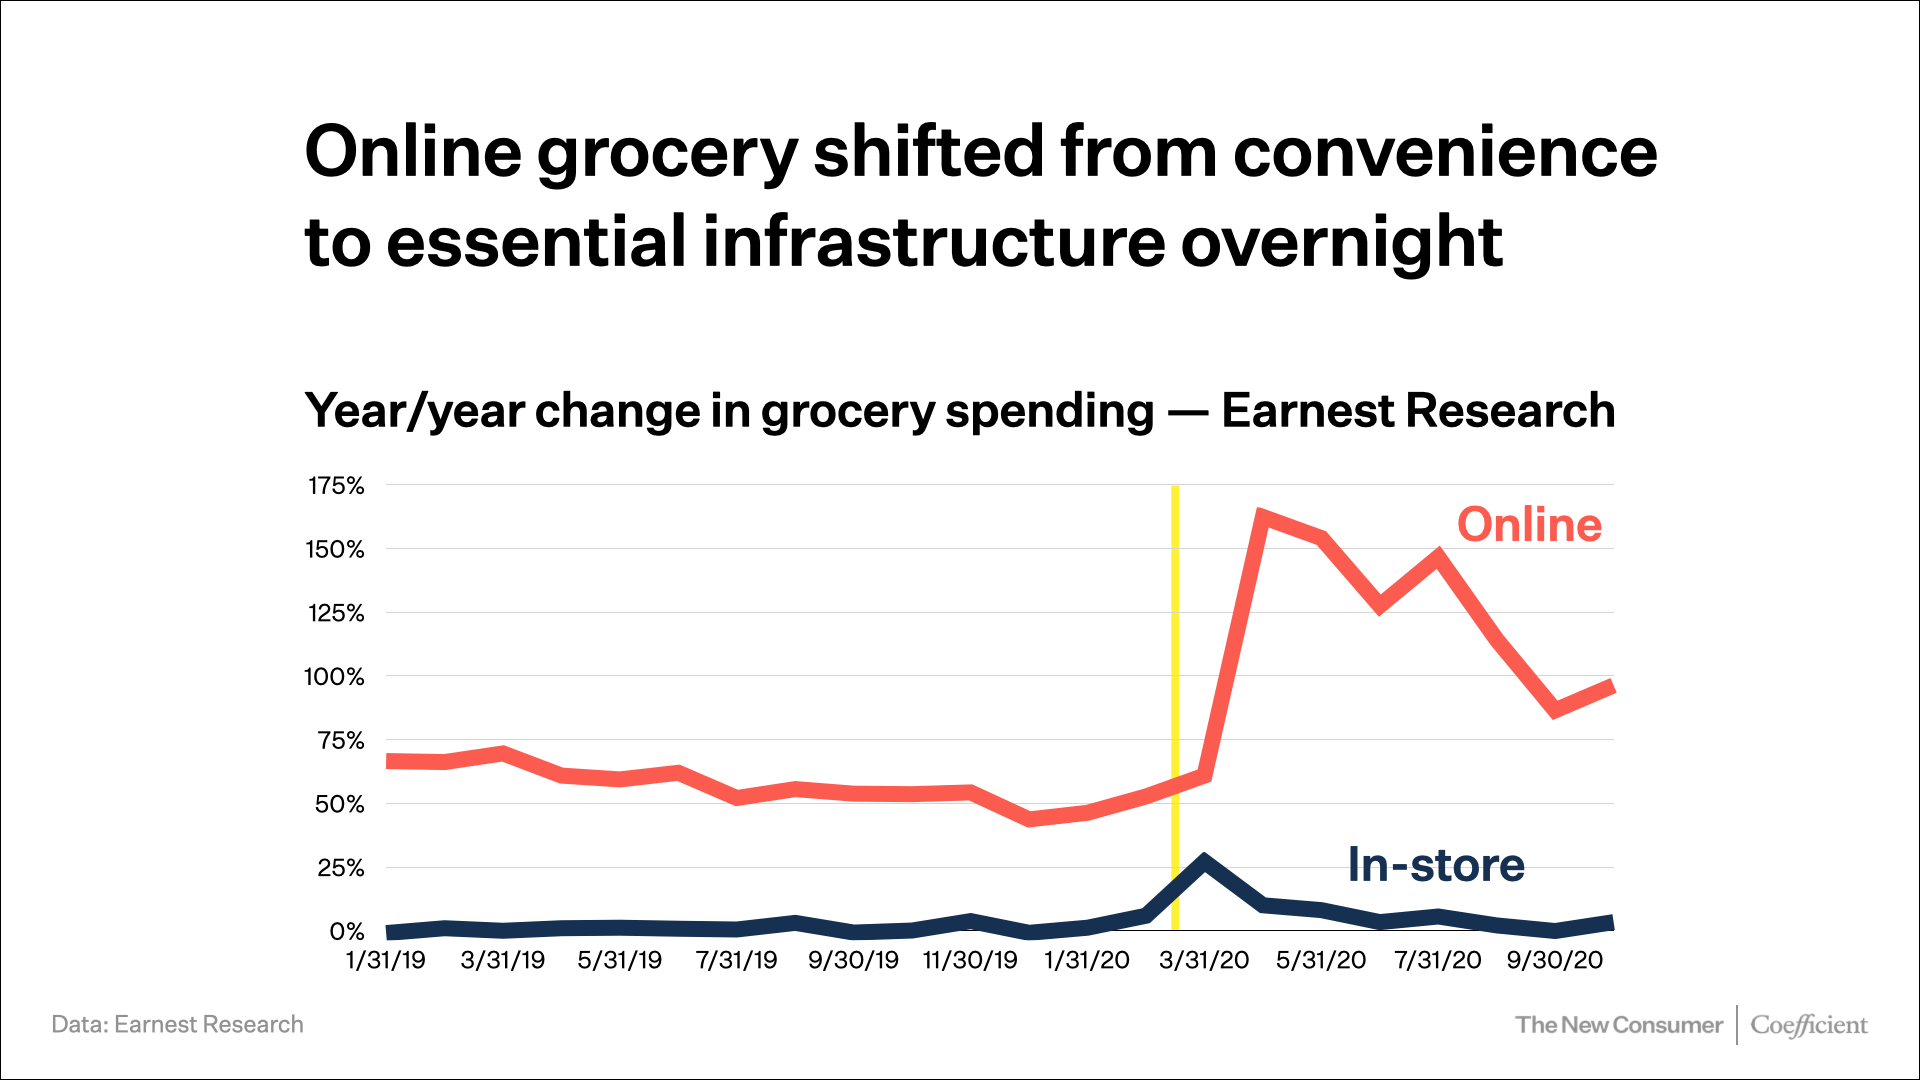 Online grocery shifted from convenience to essential infrastructure overnight